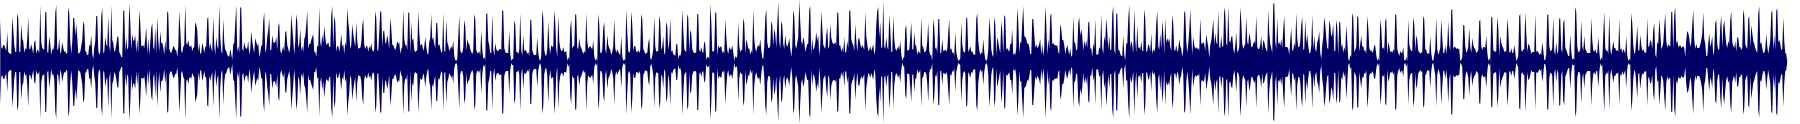 waveform of track #69075